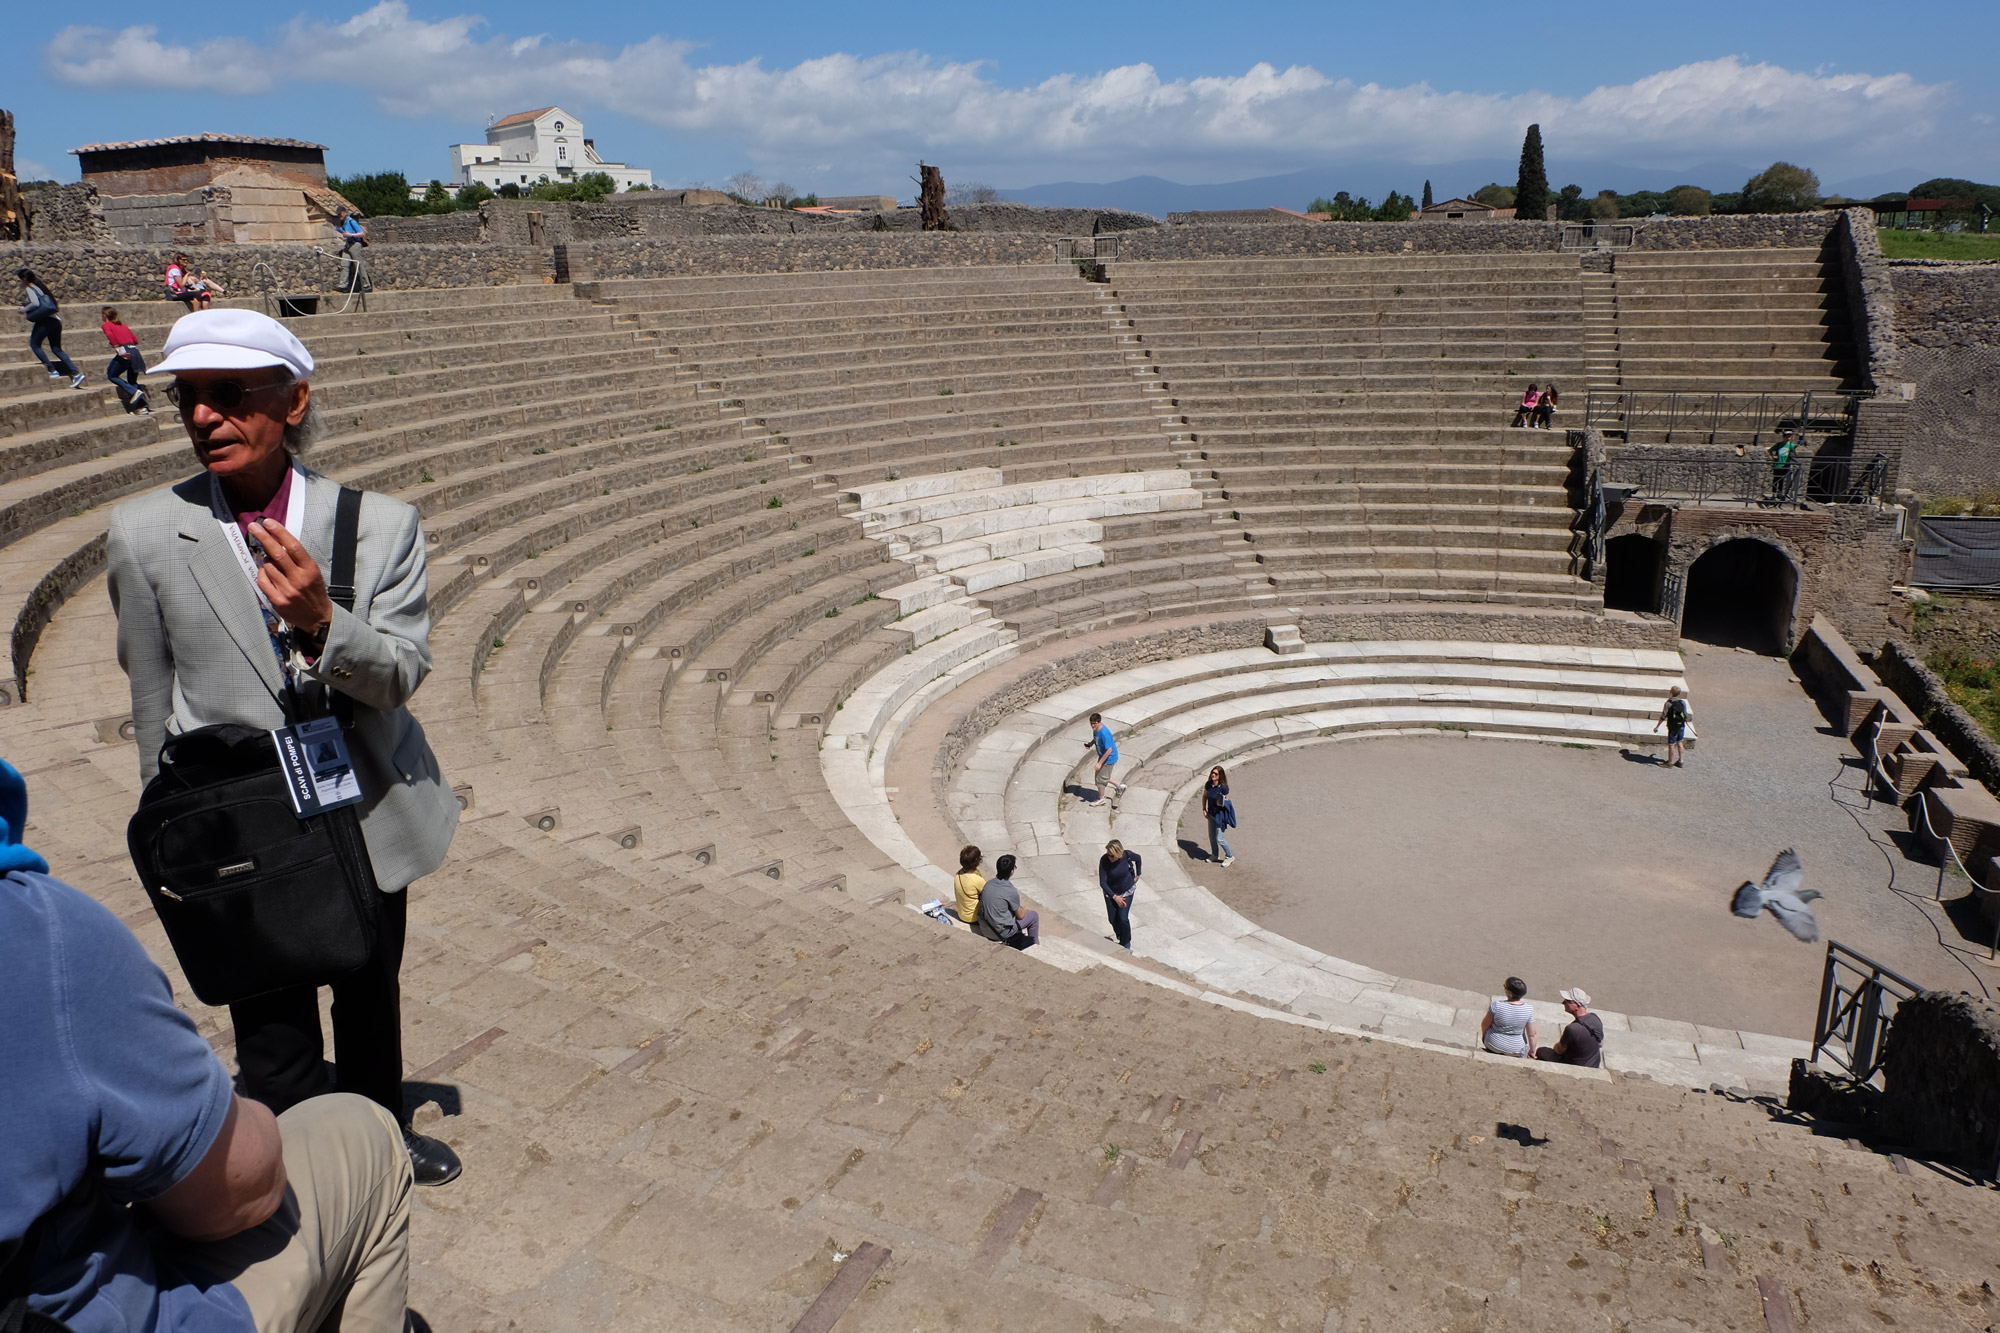 Our guide telling us about the theatre in Pompeii